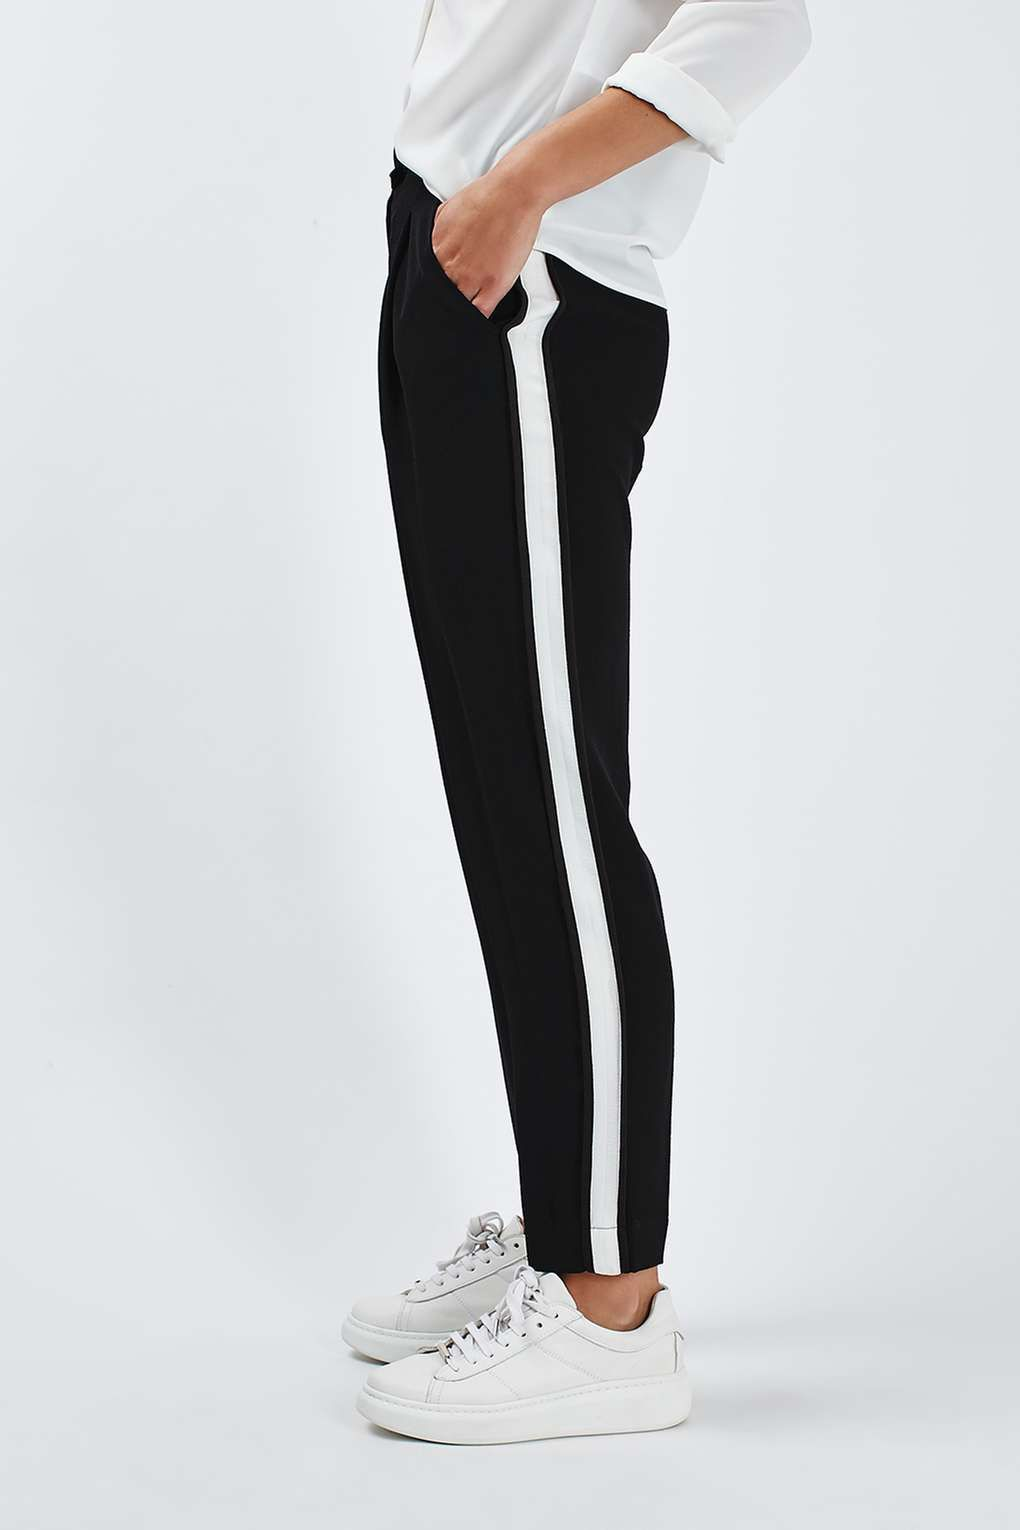 Retro style pants with stripe, The Idle Man